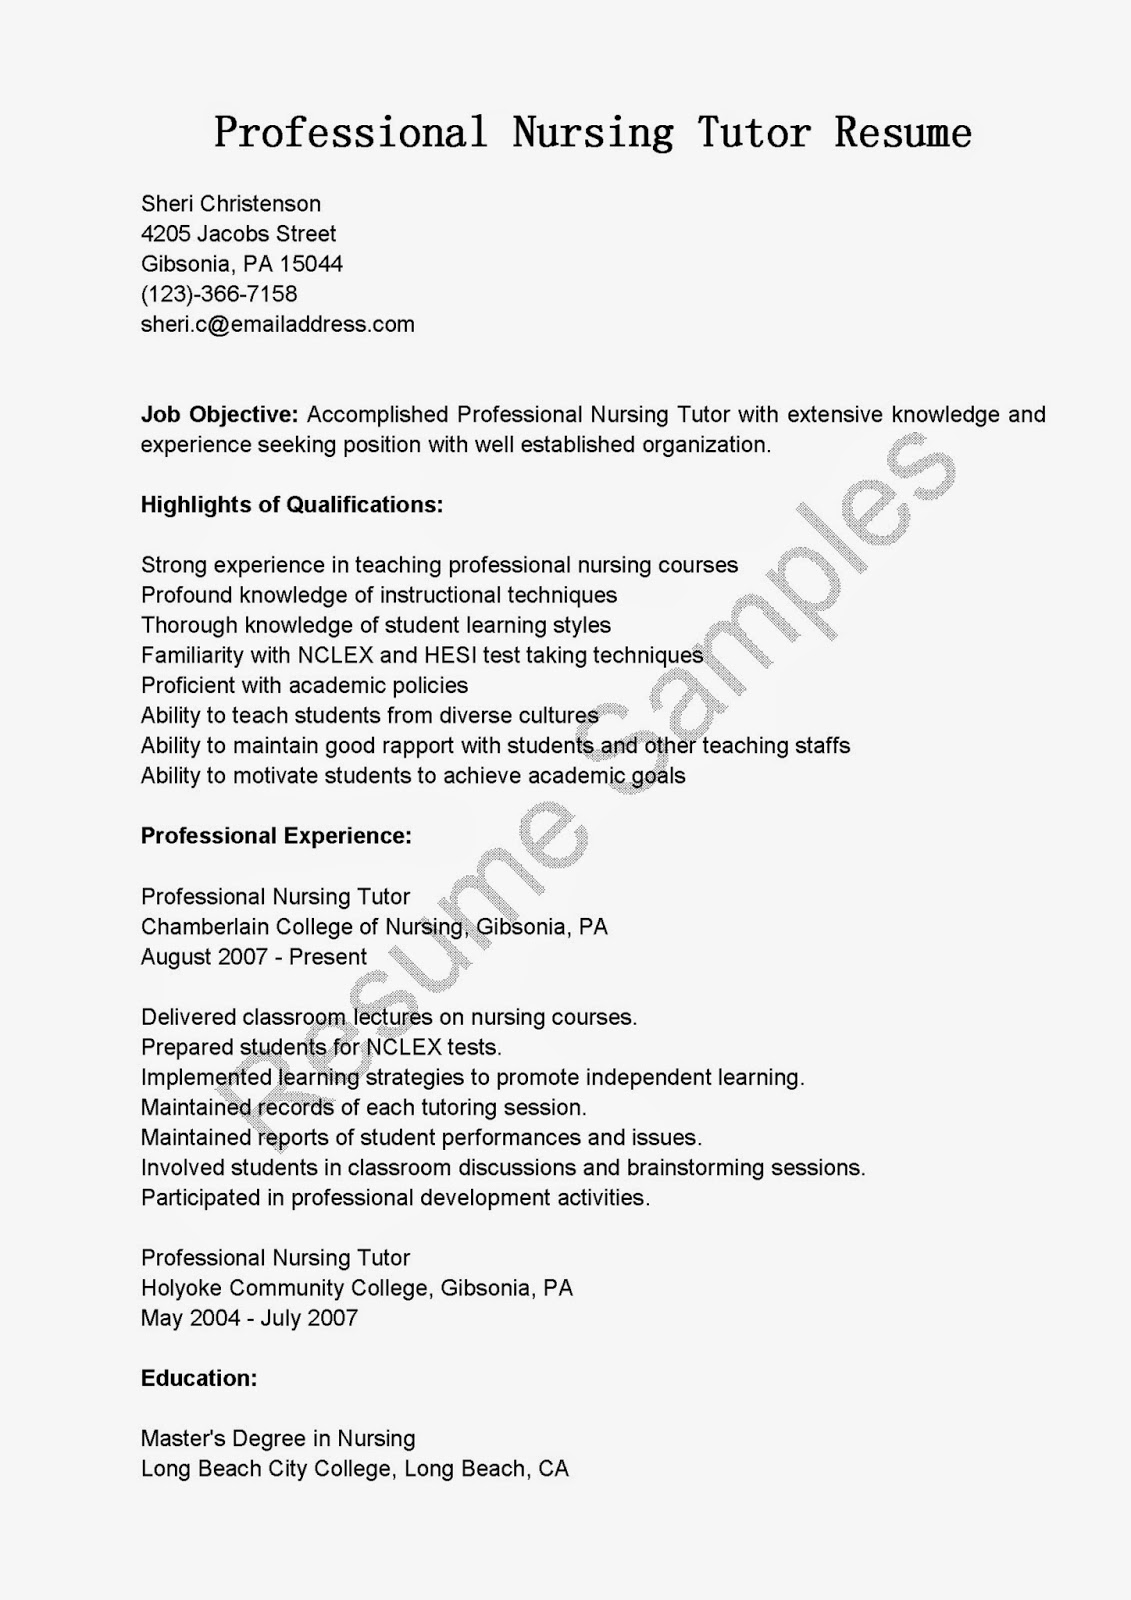 resume for nursing tutor